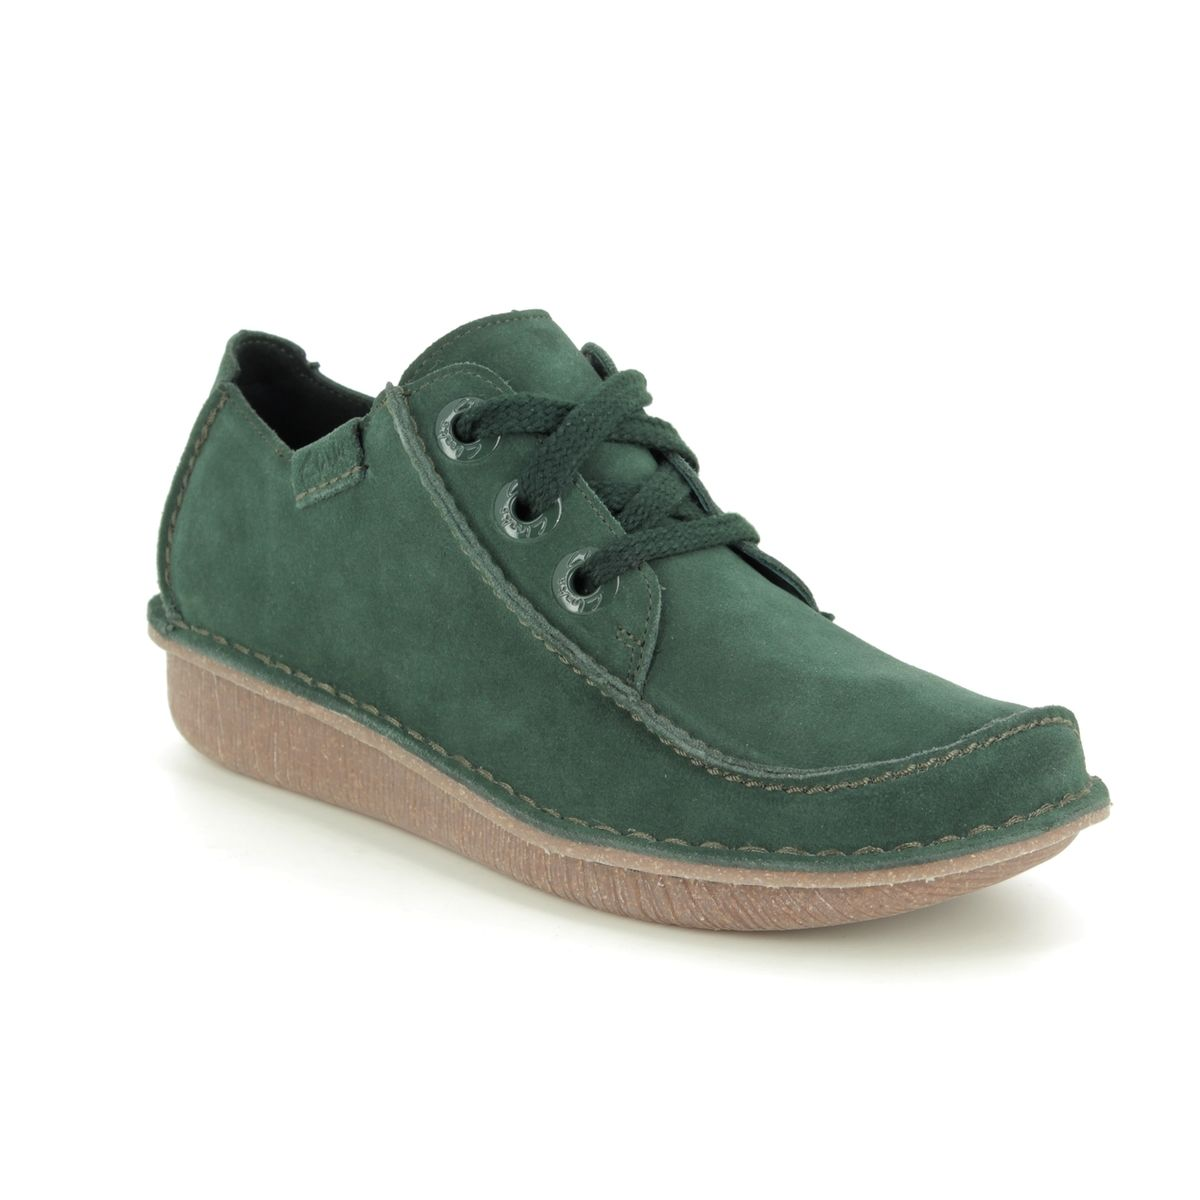 Clarks Funny Dream D Fit Green Suede